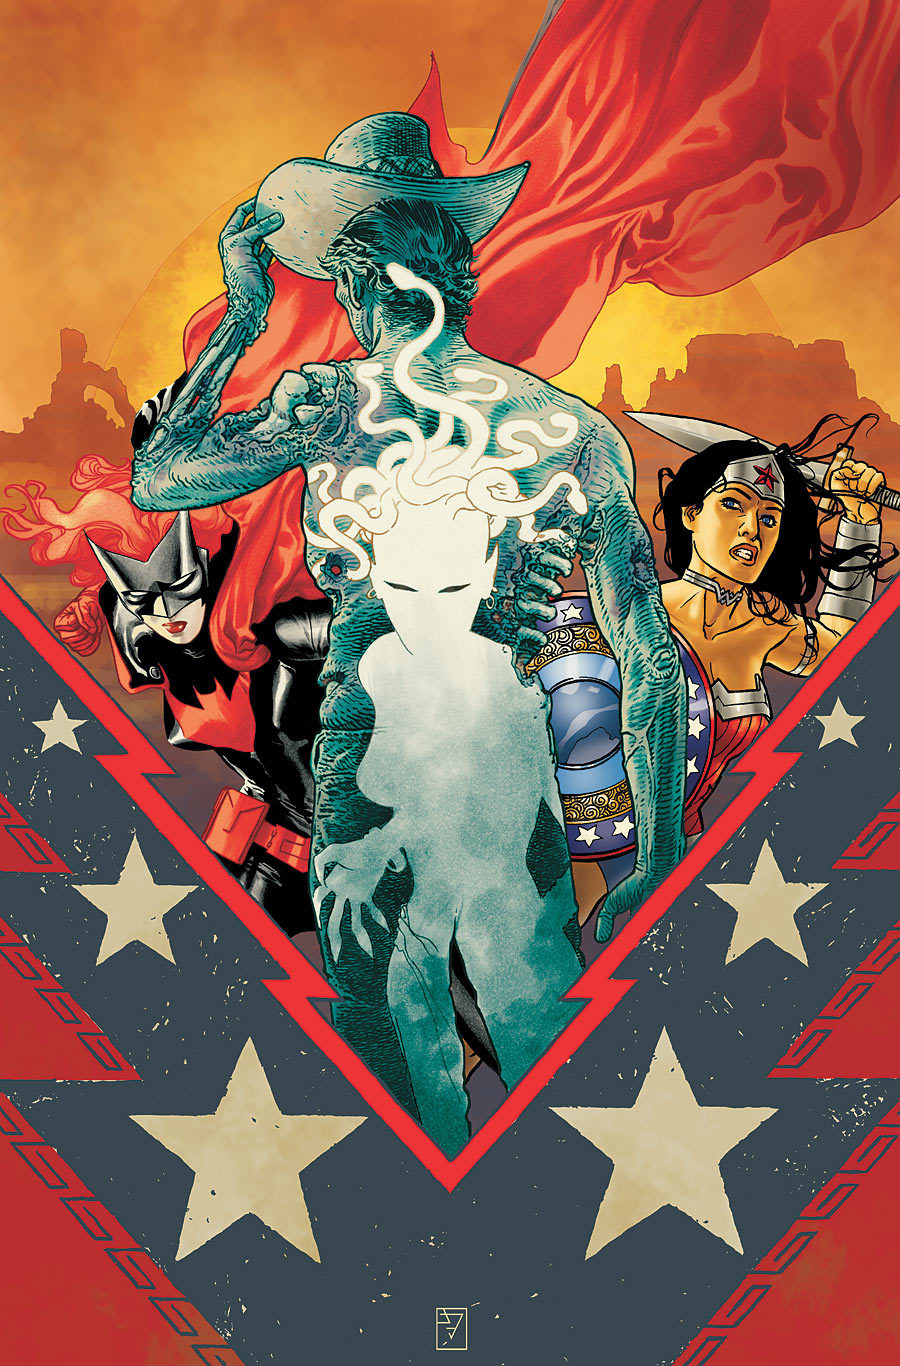 DC comics for November 2012: JH Williams designs fantastic covers. This is the cover for Batwoman #14, another beautifully crafted visual.